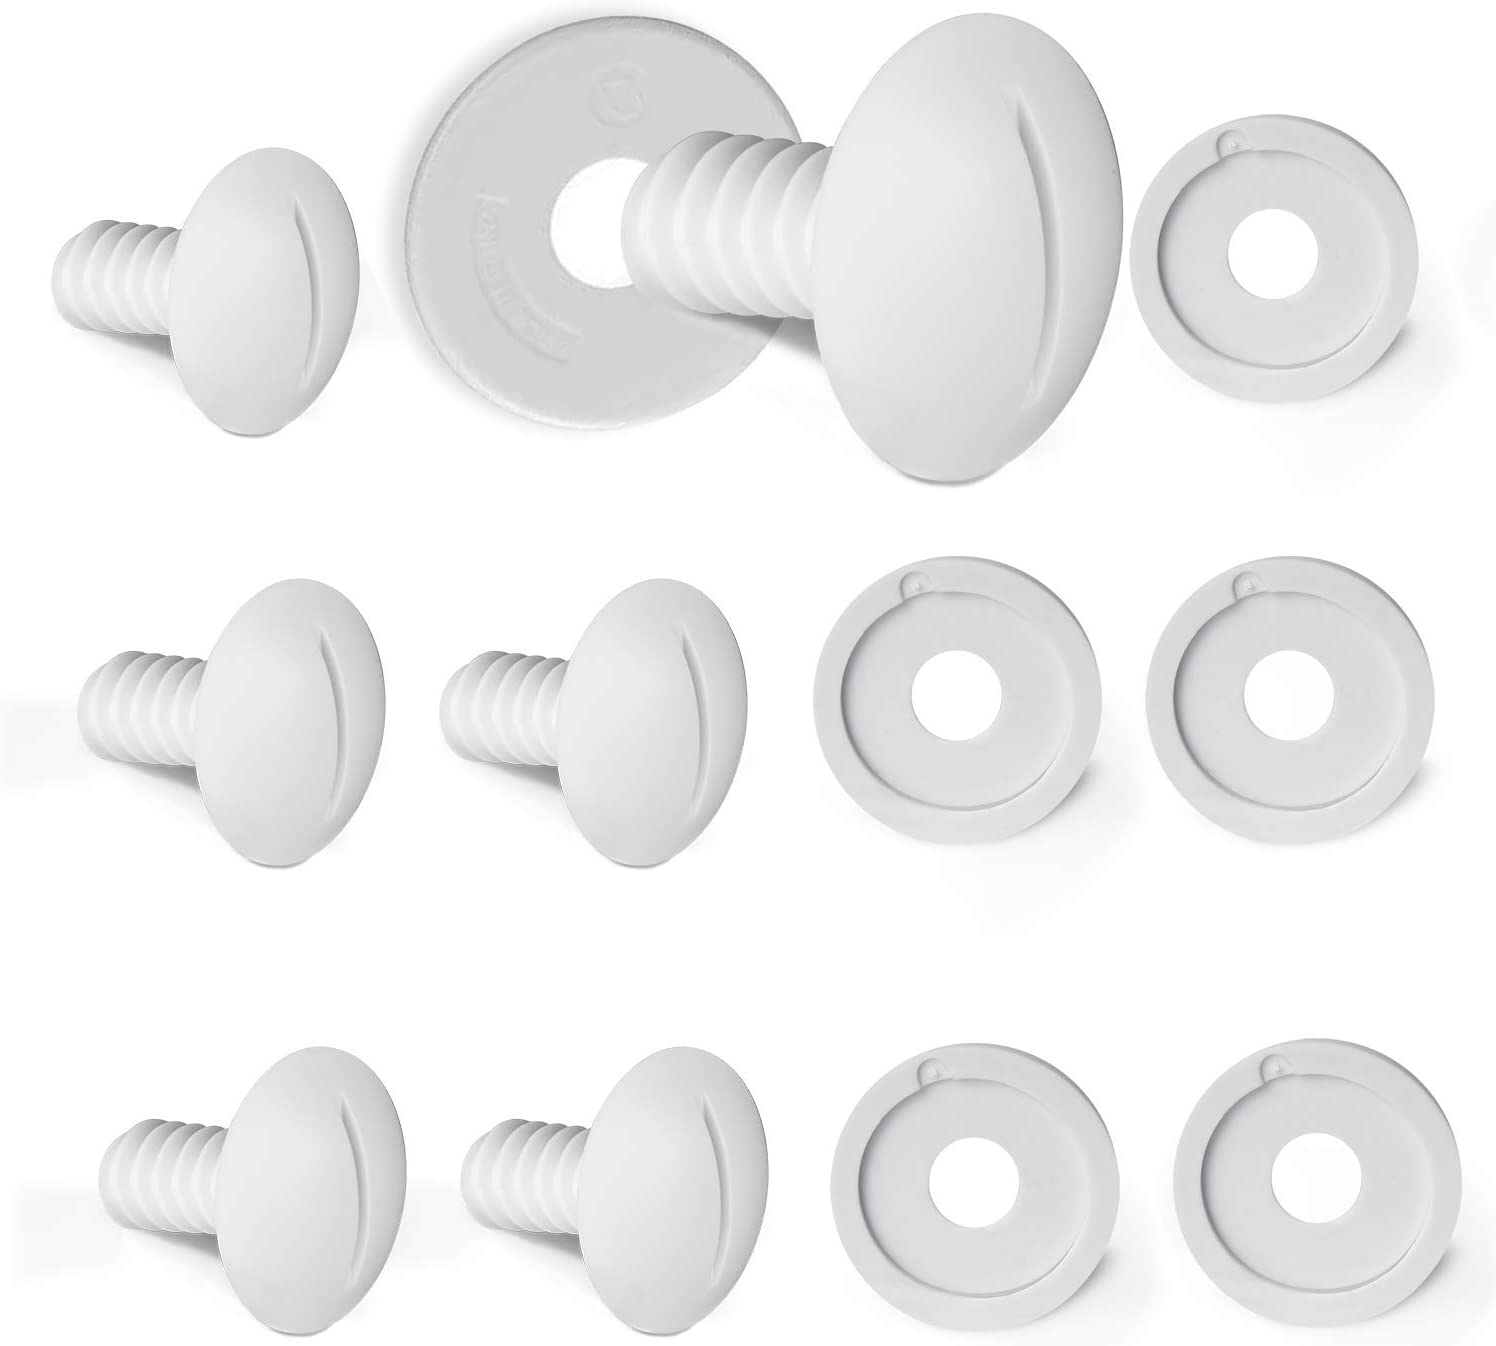 iBayx White Wheel Screws Set Including 6 PCS Plastic Wheel Screws Replacement for Polaris Pool Cleaner 180/280 and 6 PCS Washers Pool Cleaner Replacement Parts C55 C-55, White,12 Pack